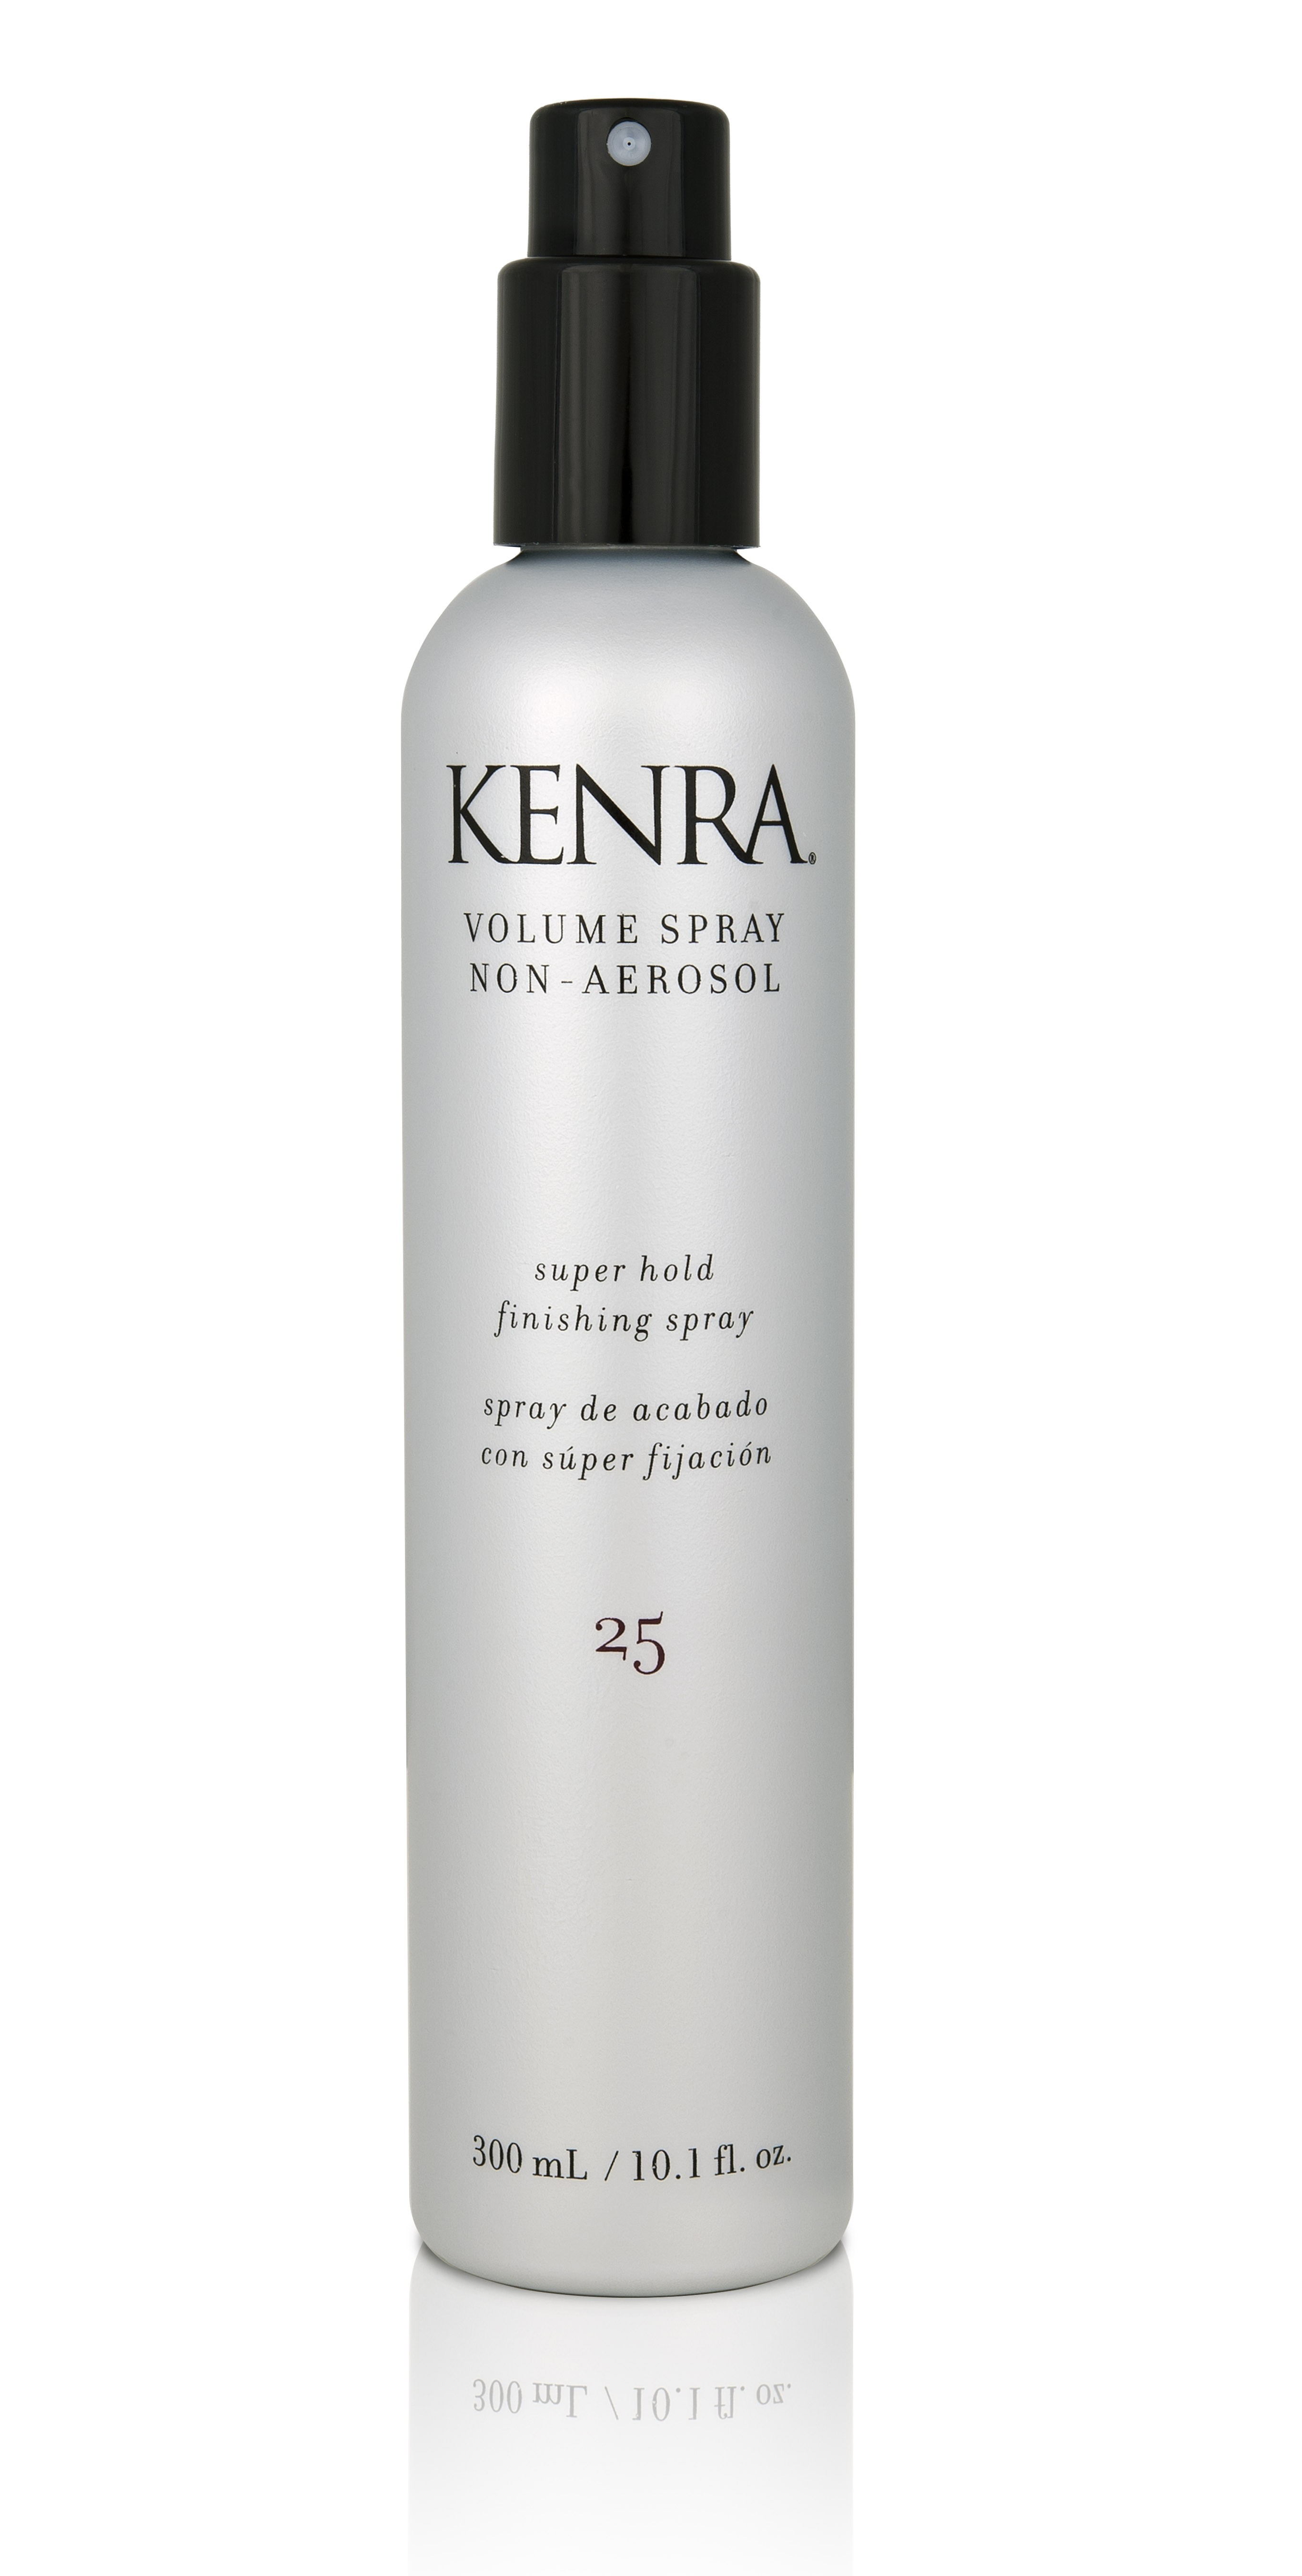 Kenra Non Aerosol Volume Spray 25